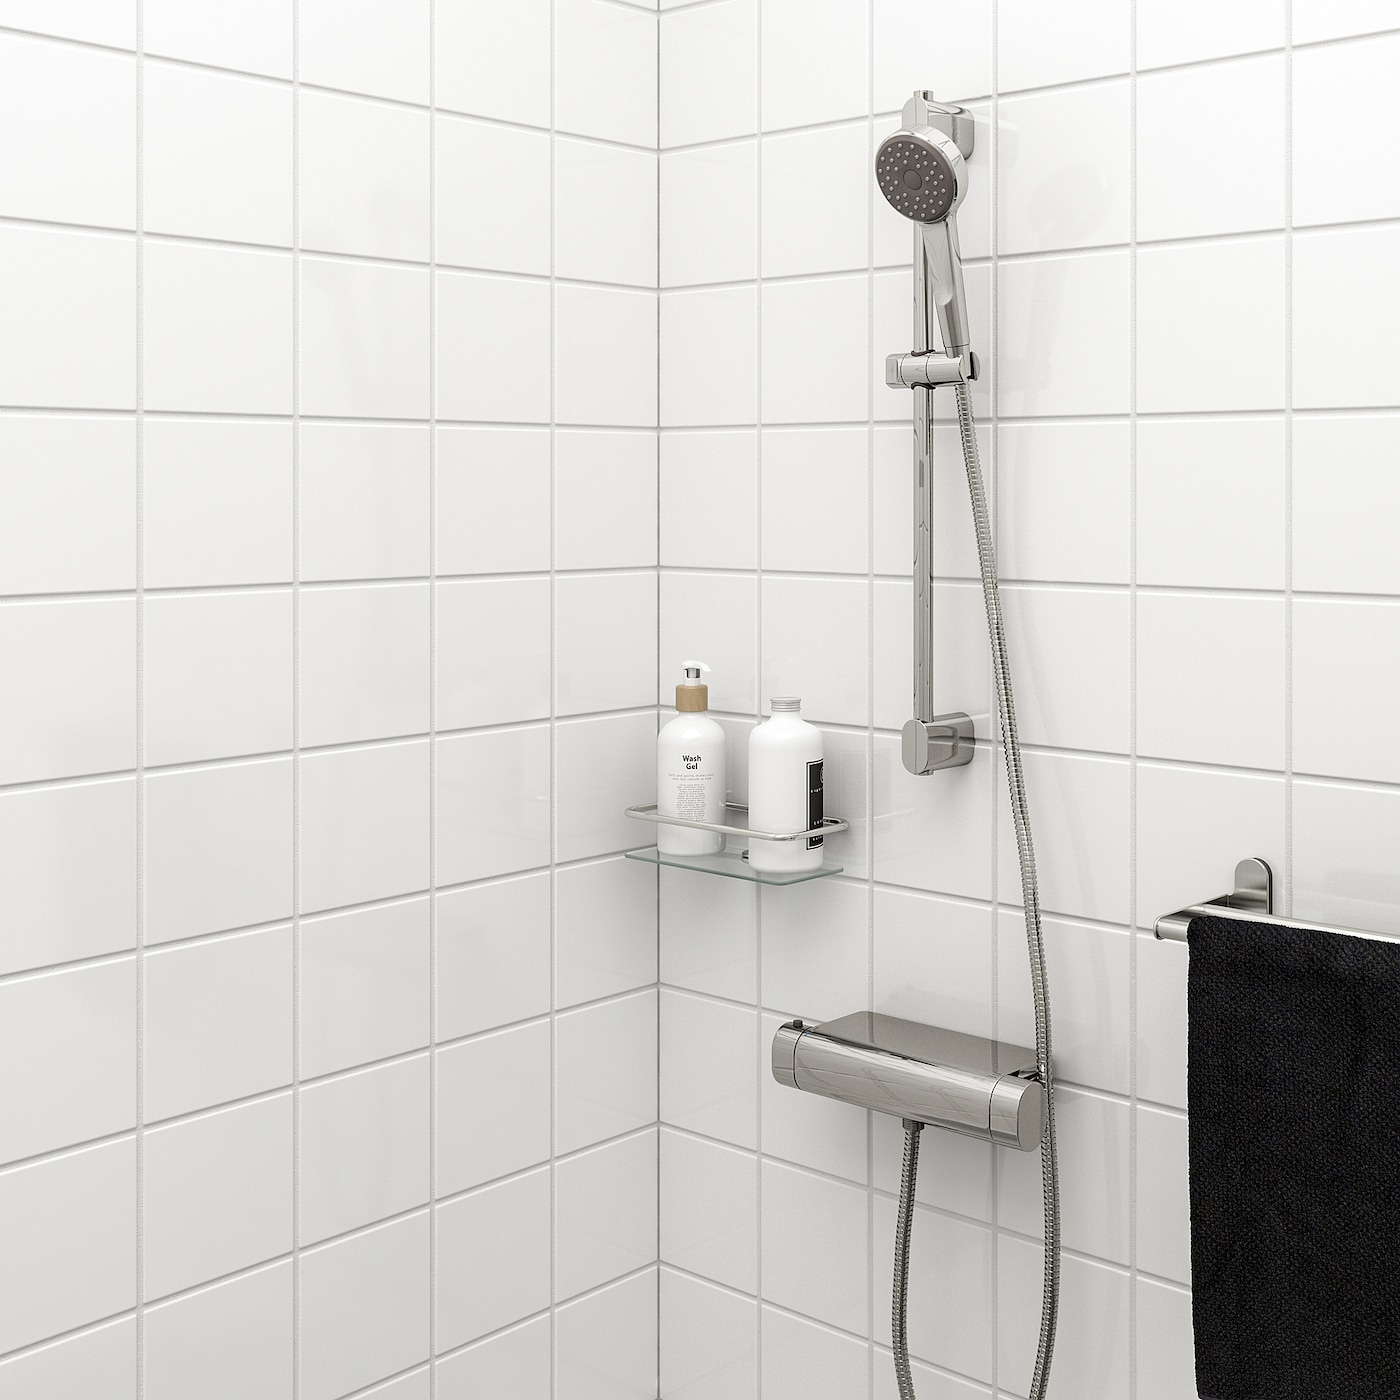 BROGRUND Riser rail with handshower kit, chrome-plated